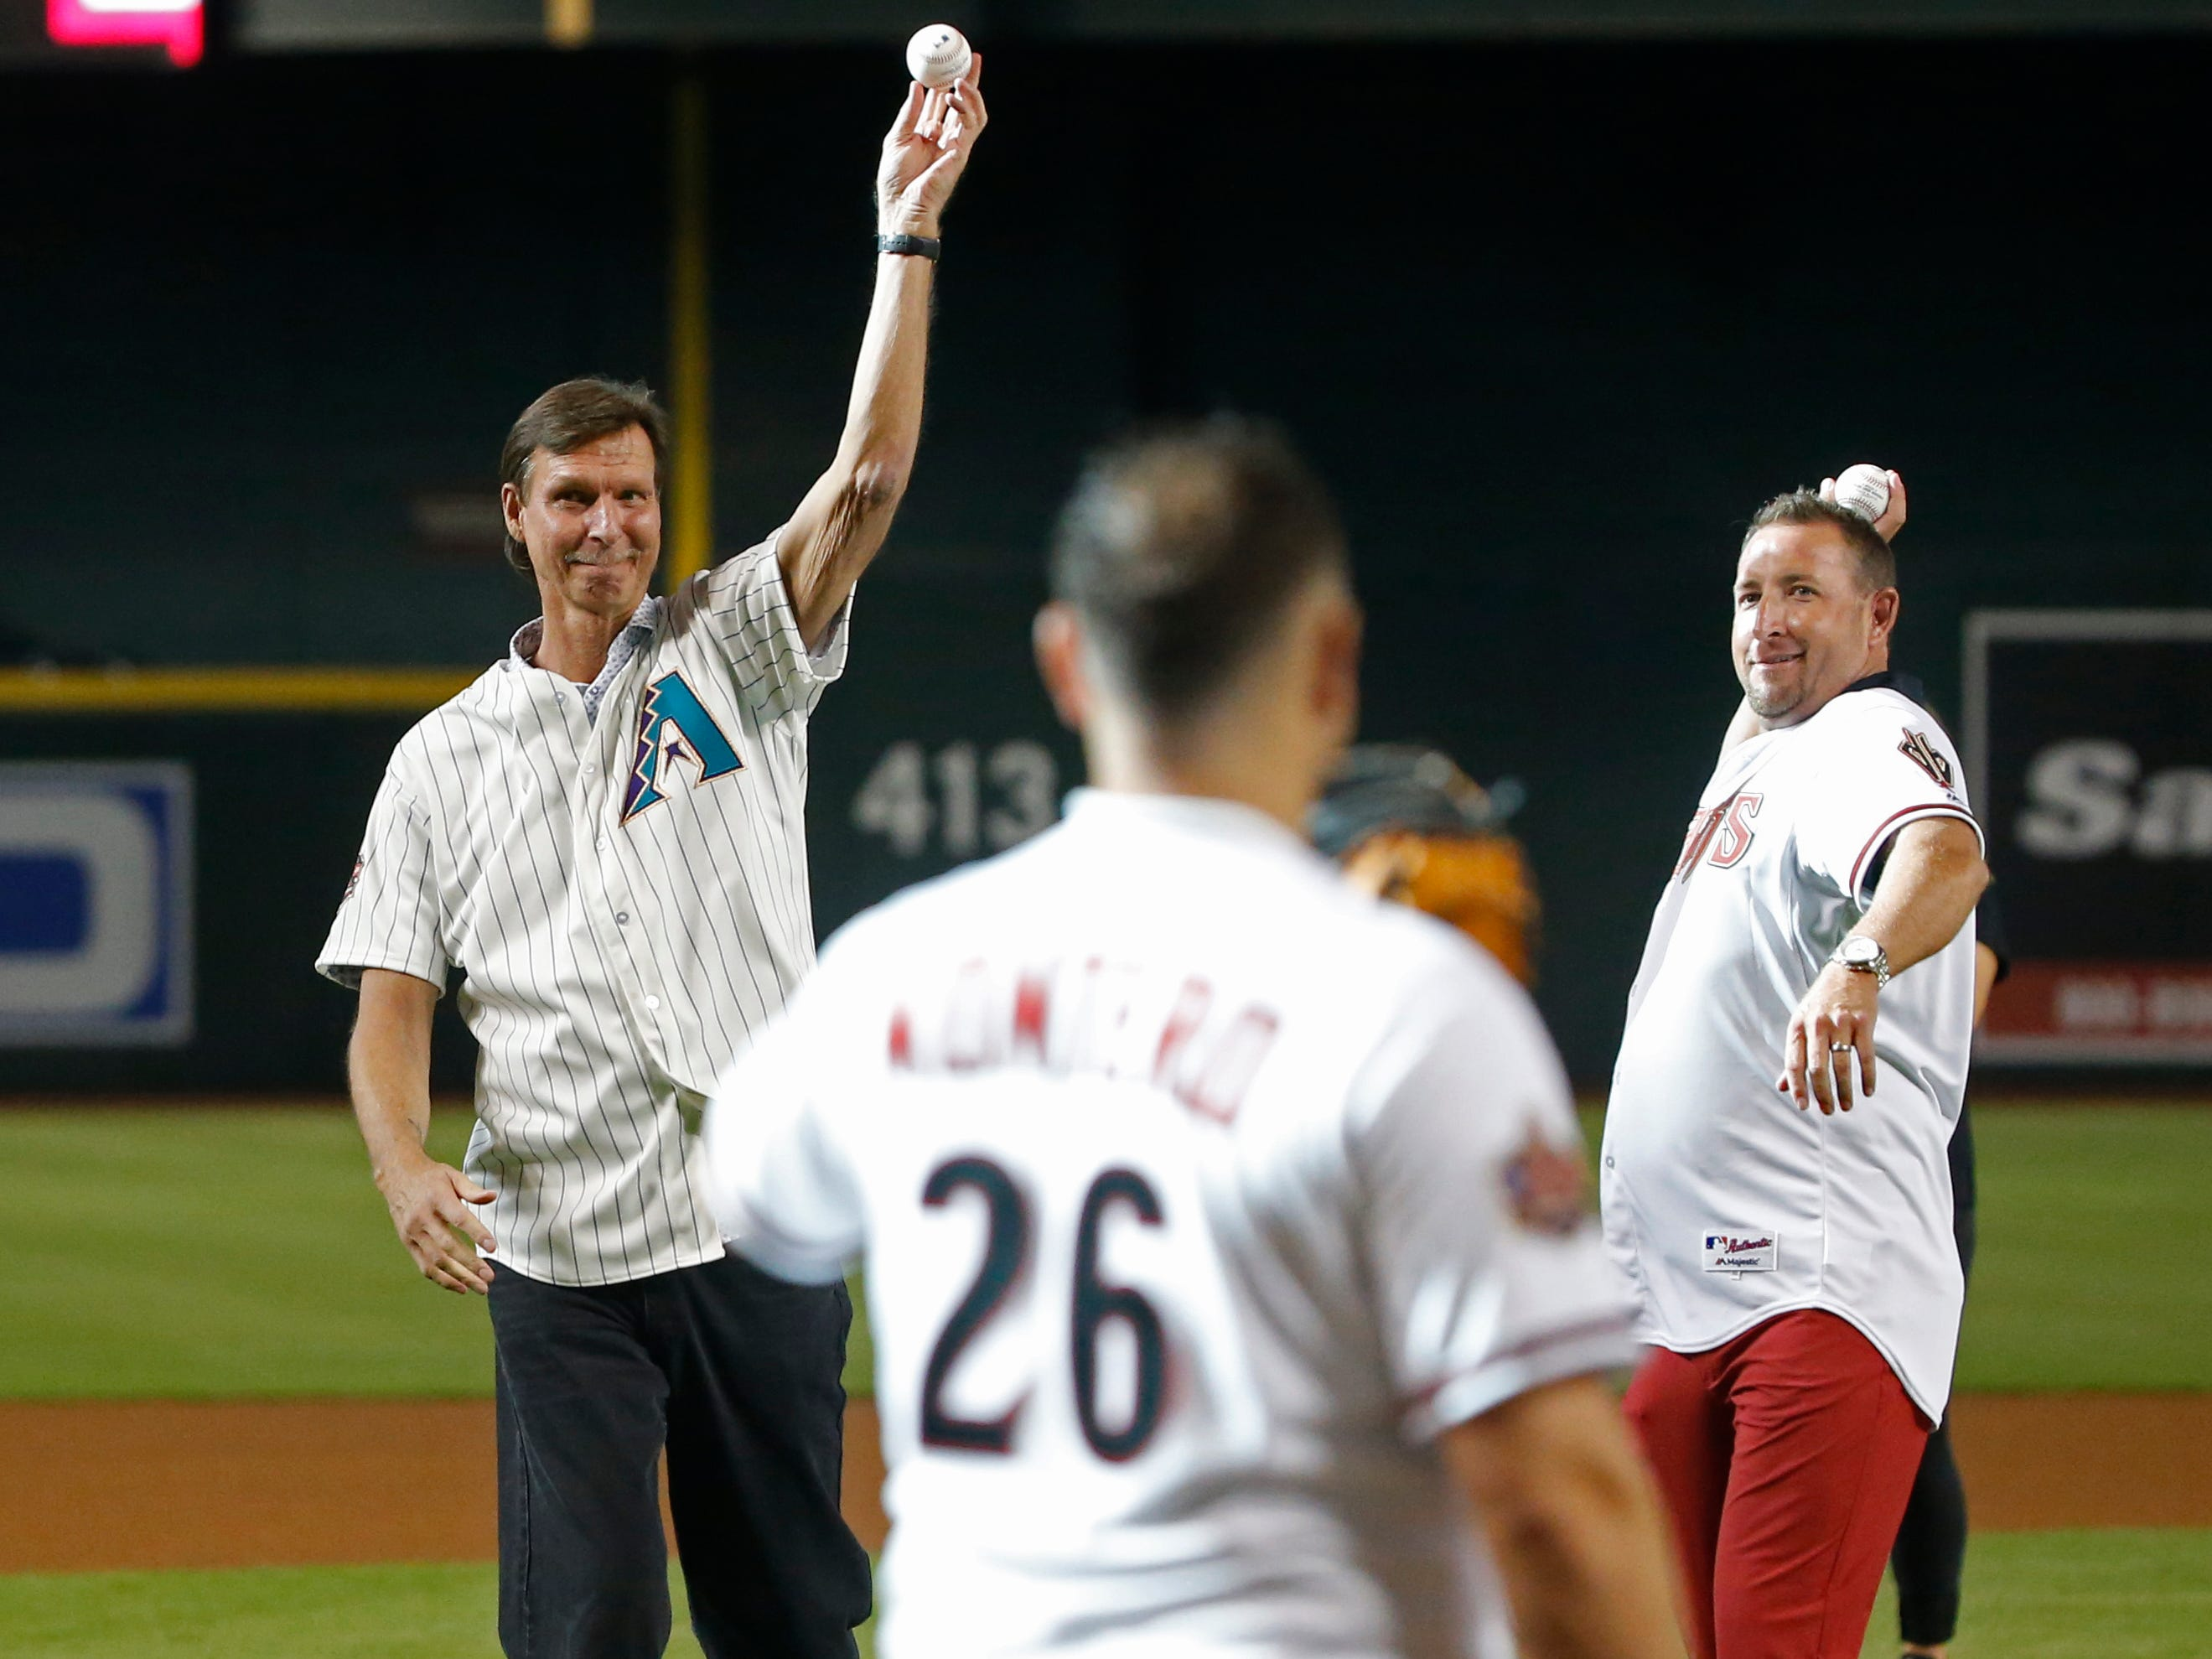 Diamondbacks Randy Johnson (L) and Brandon Webb throw out the first pitch with their teammates of the 20th Anniversary team before a Diamondbacks game at Chase Field in Phoenix, Ariz. on Aug. 4, 2018.